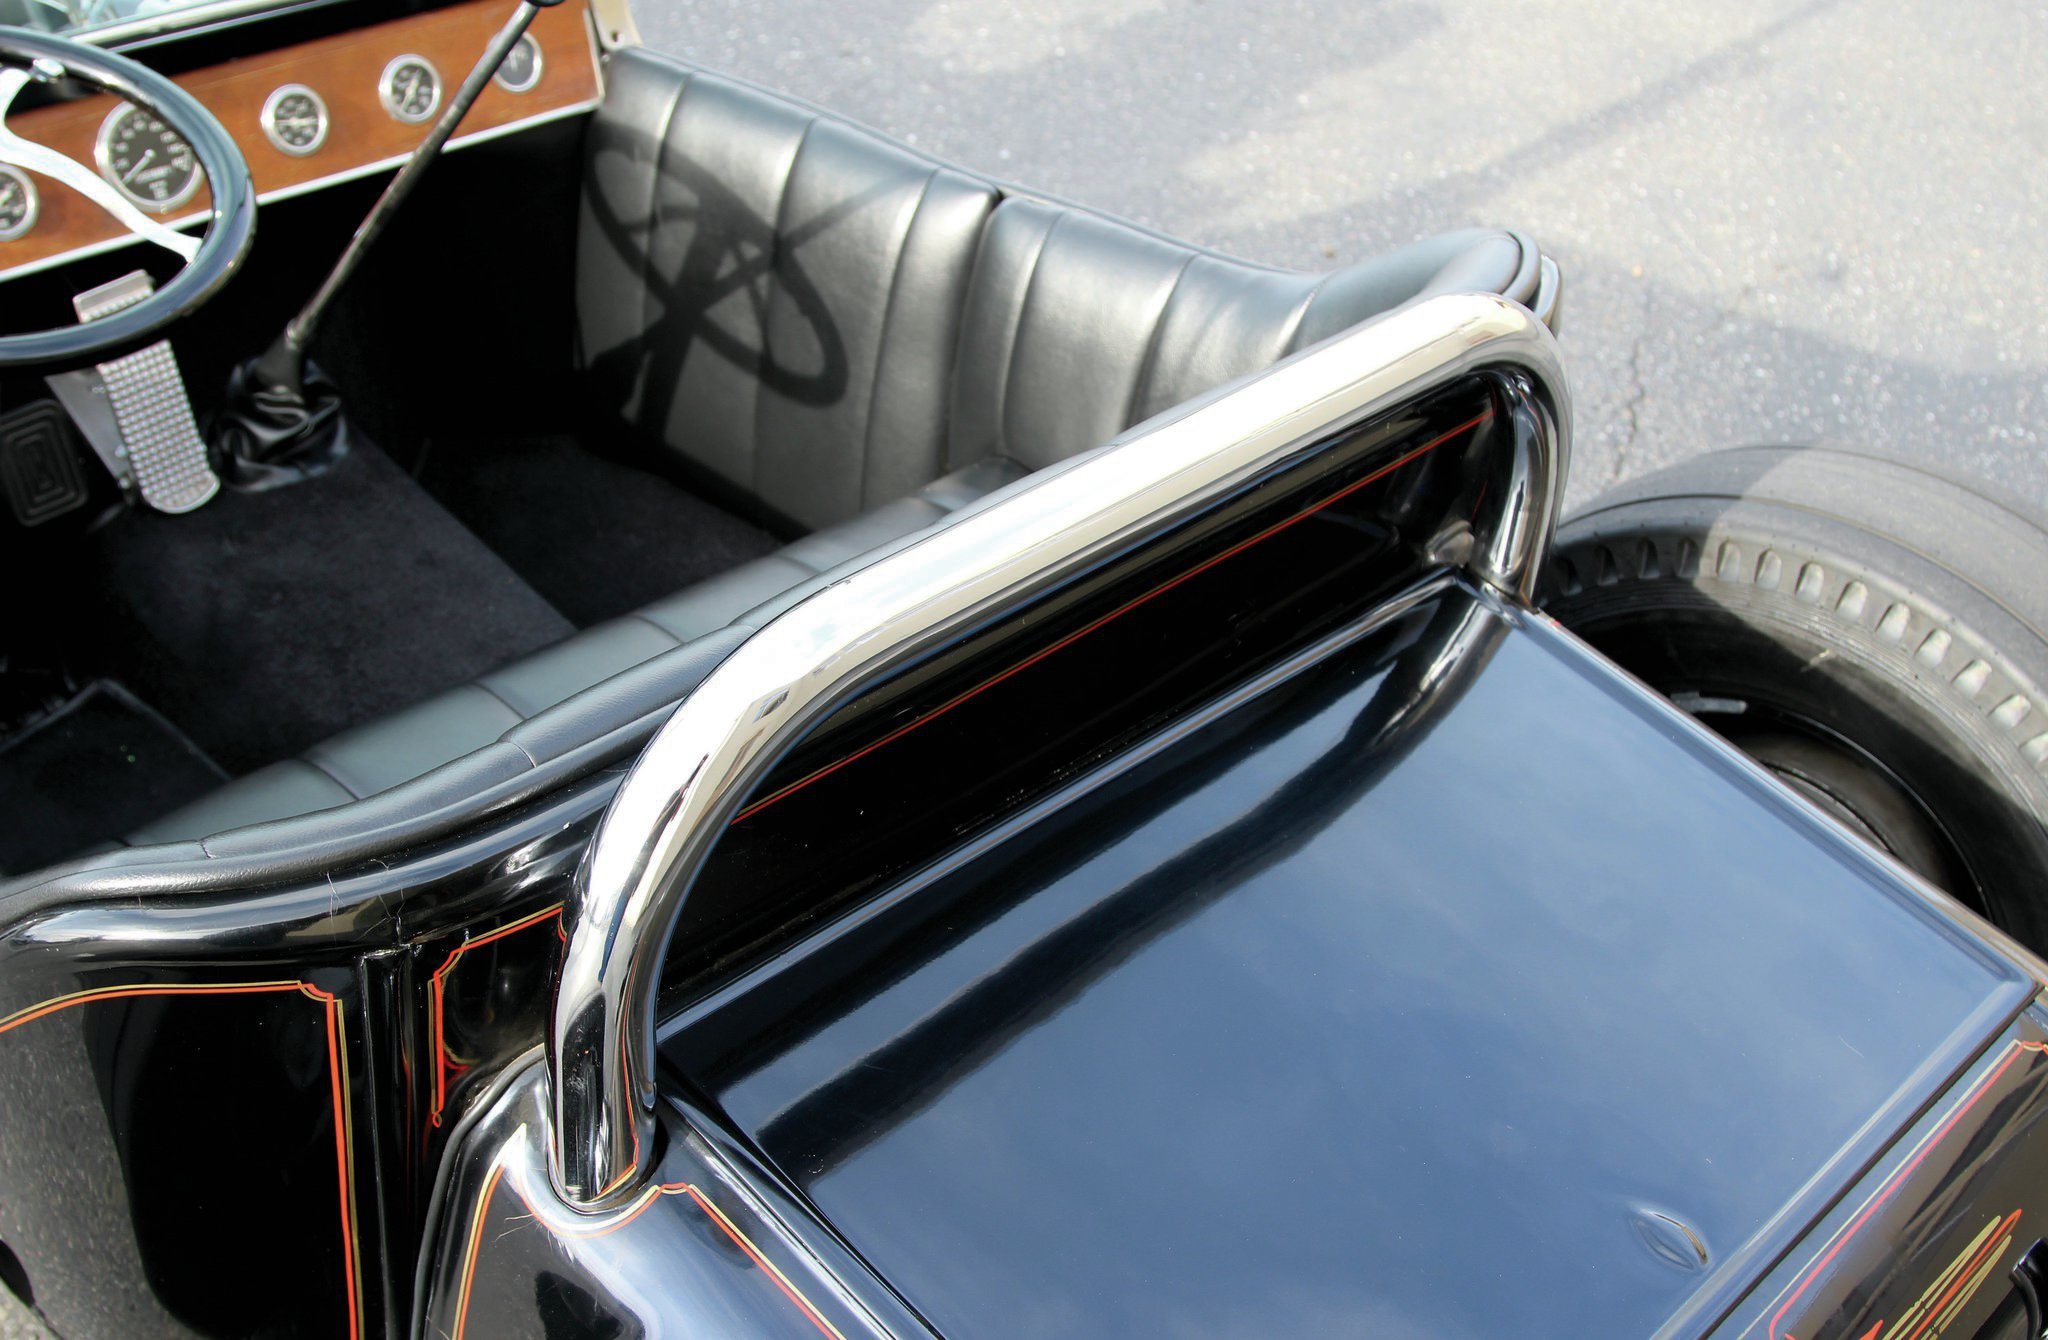 For racing the T had a much larger rollbar, which Marcus received with the car. This shorter roll bar was added by John after the T became a street car, to maintain the racing look of the car.